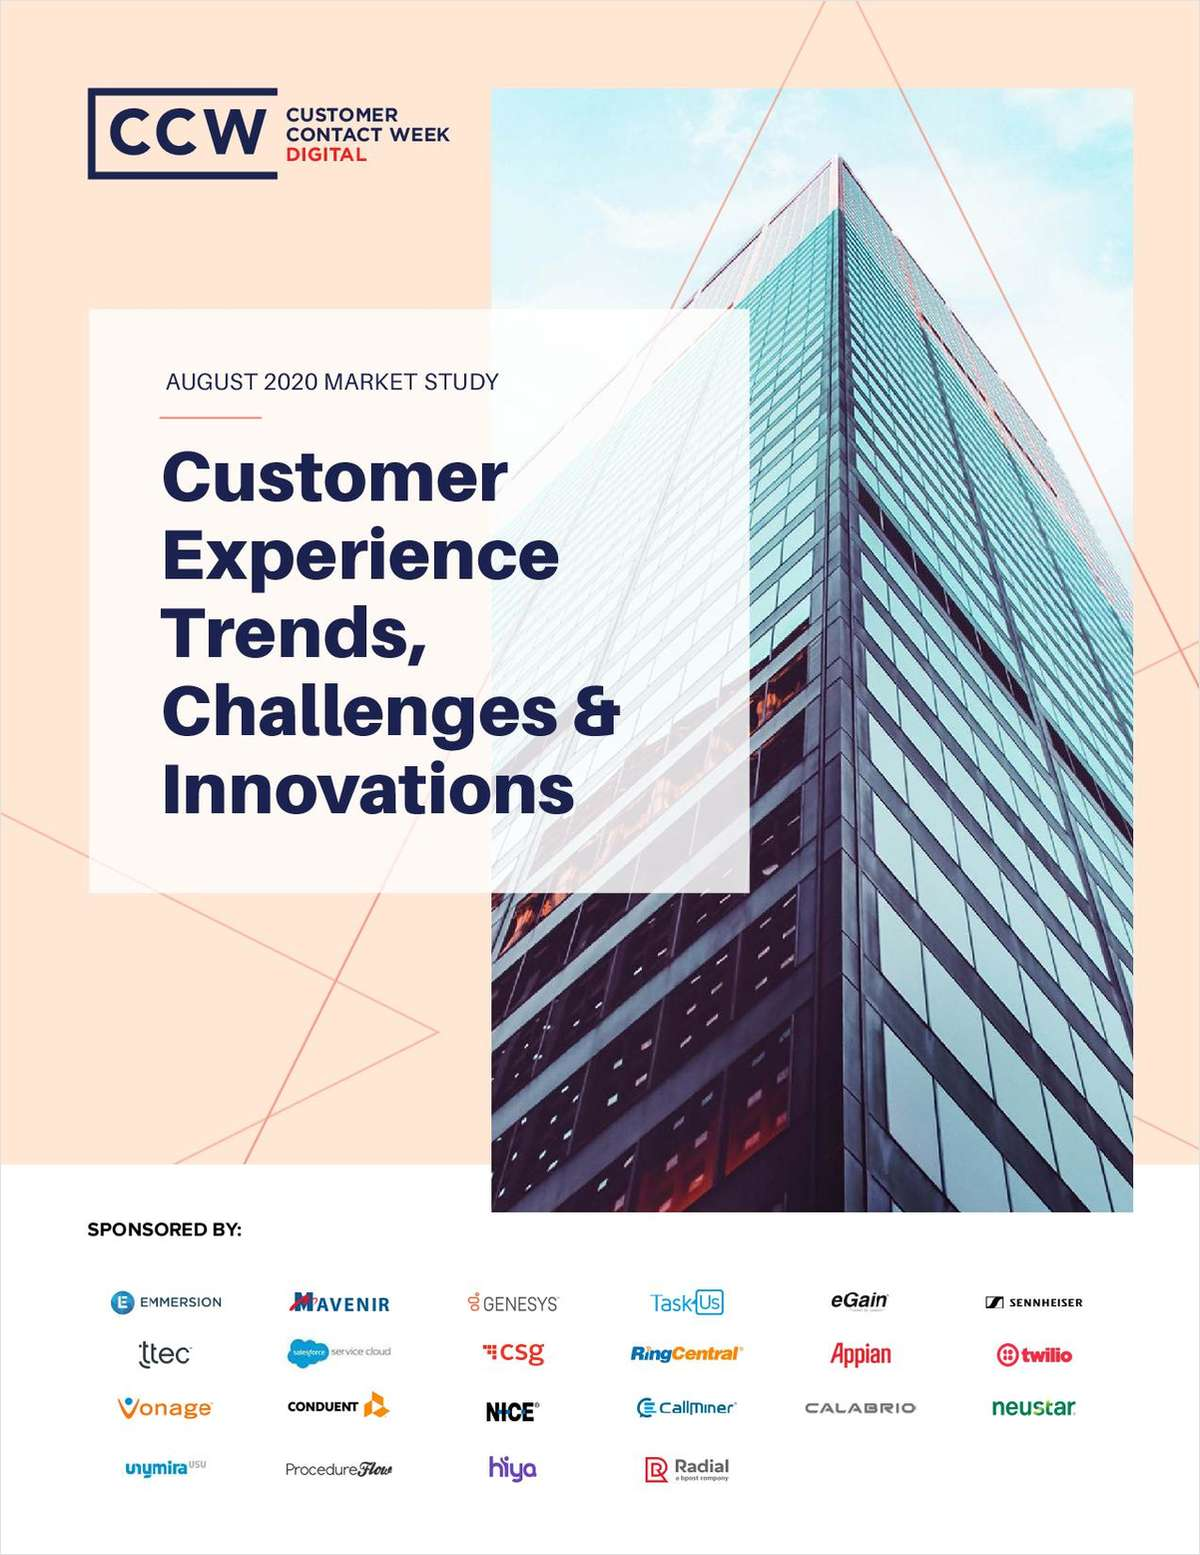 Market Study: Customer Experience Trends, Challenges & Innovations